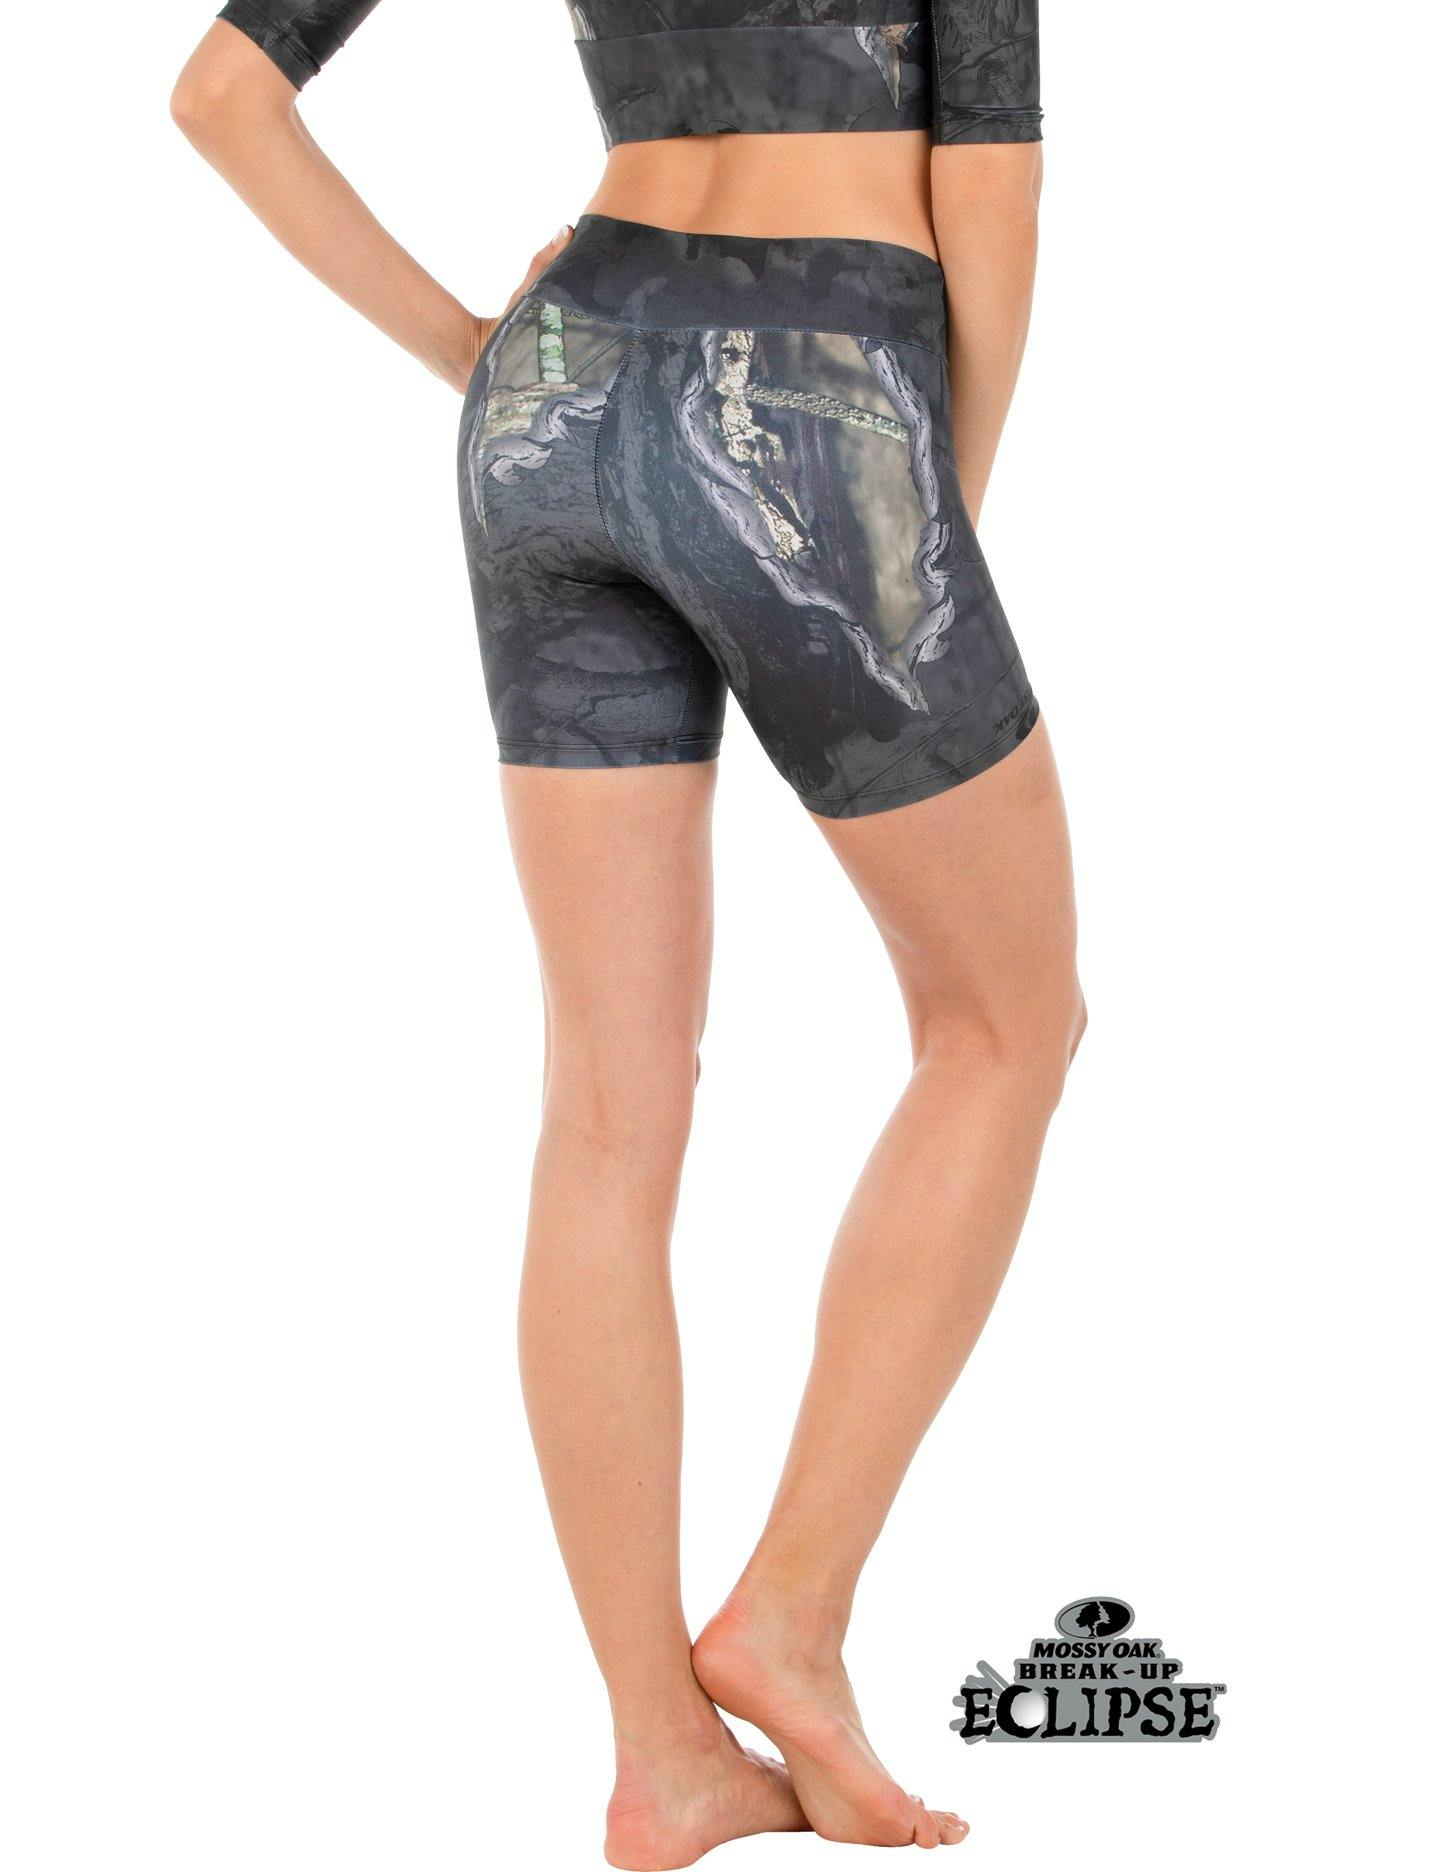 Apsara Shorts Low Waist, Mossy Oak Break-Up Eclipse